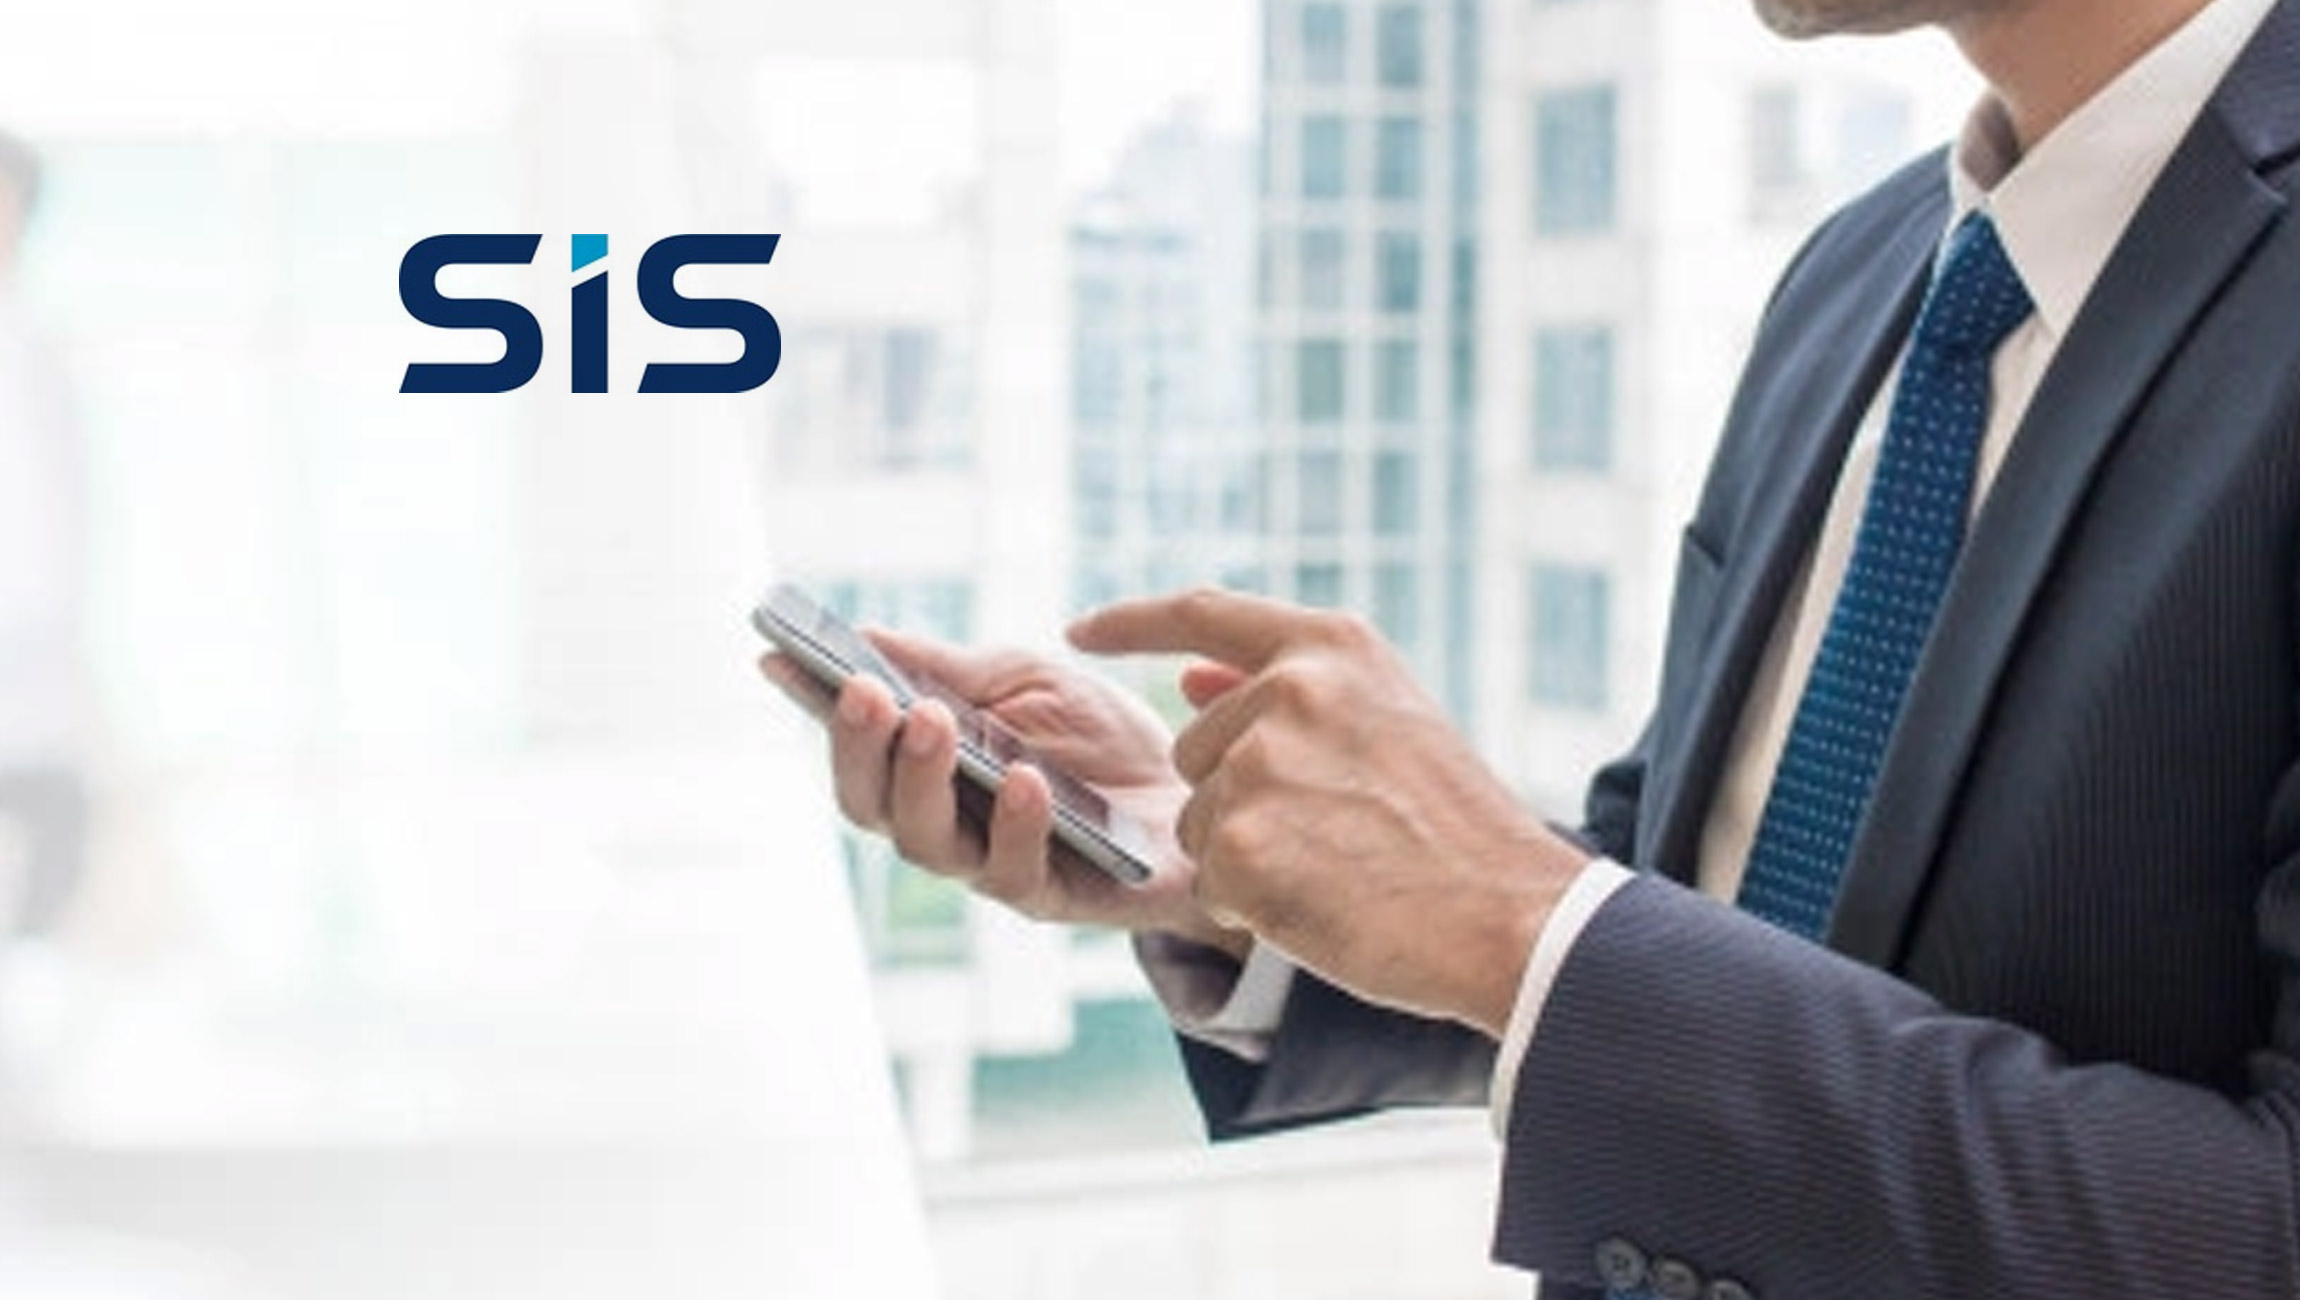 Pacific-Mobile-Structures-chooses-SIS-Construct-365-solutions-to-Enhance-the-capabilities-of-Microsoft-Dynamics-365